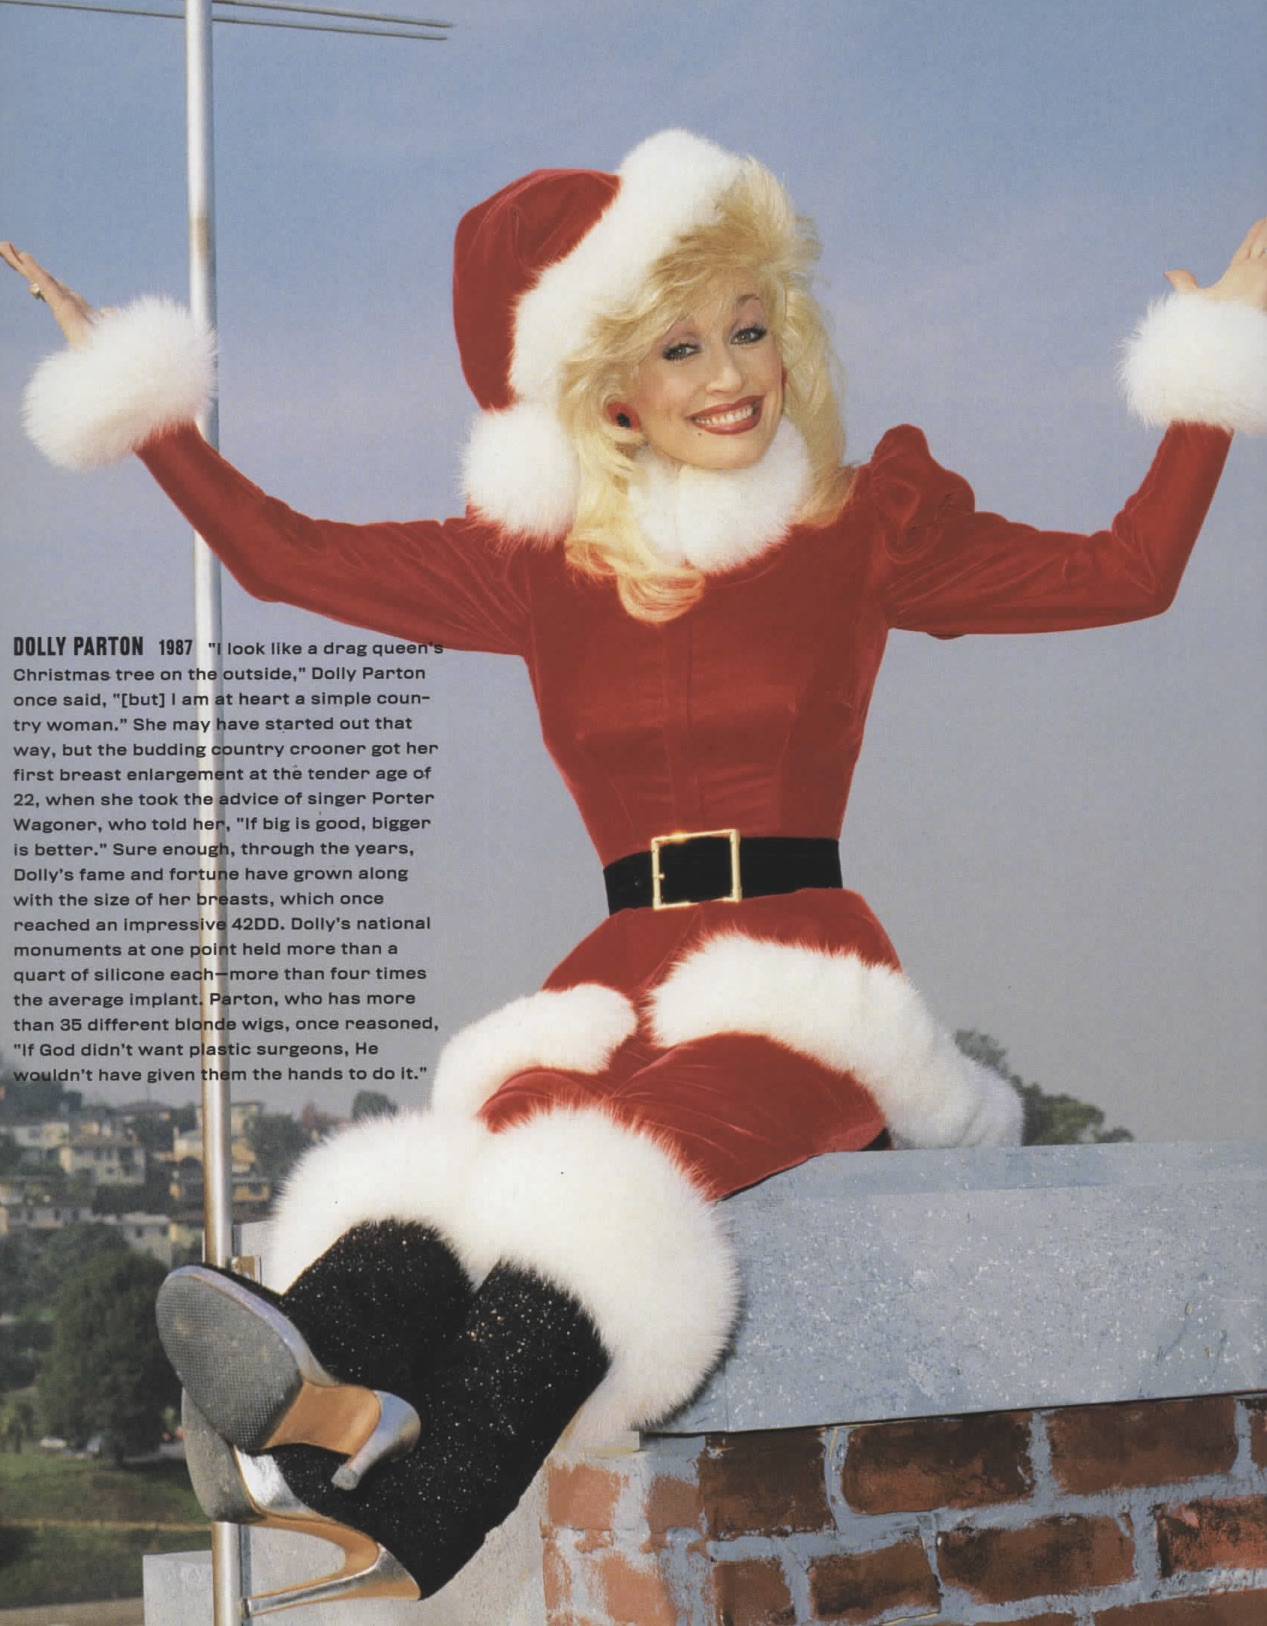 dolly parton in holiday outfit busty dolly